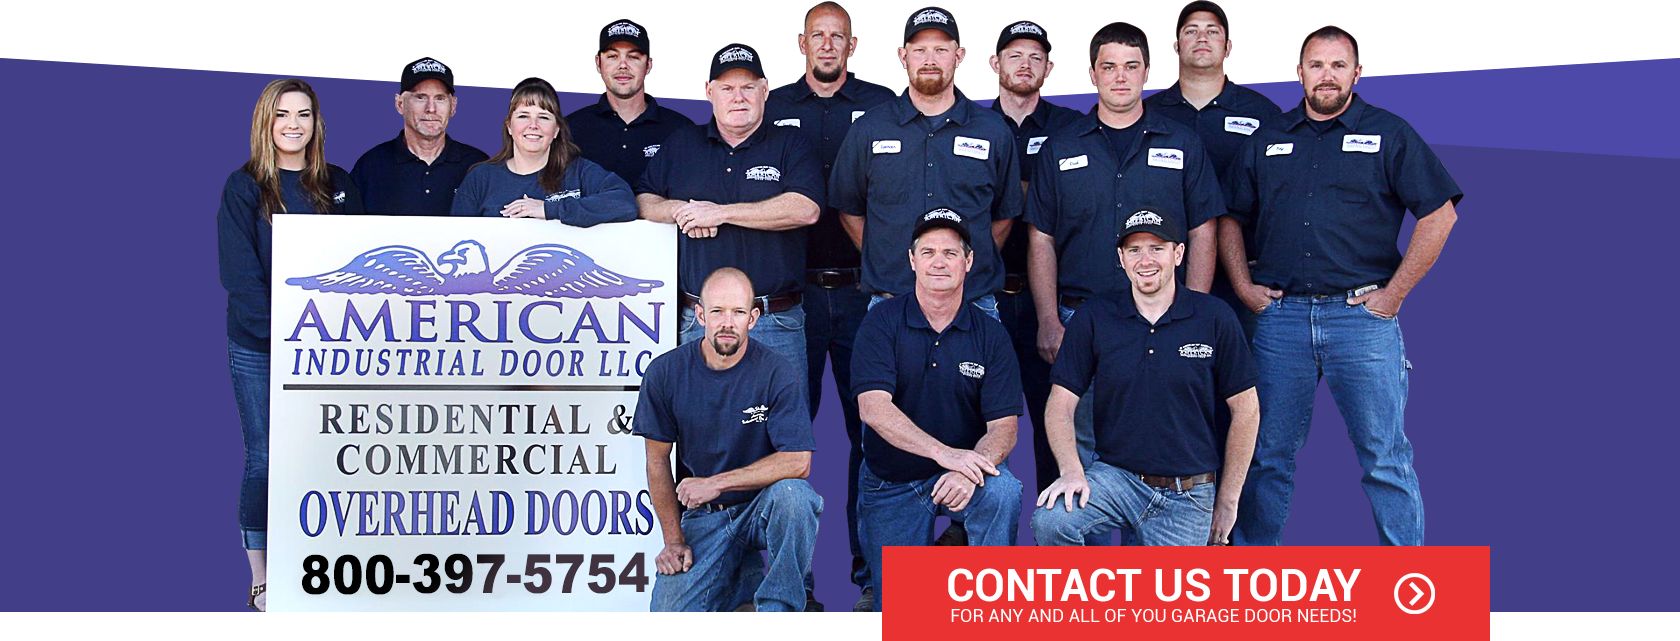 We Serve All Of Southern Oregon And Northern California Including Garage  Doors In Grants Pass, Garage Doors In Ashland, Garage Doors In Klamath  Falls And ...